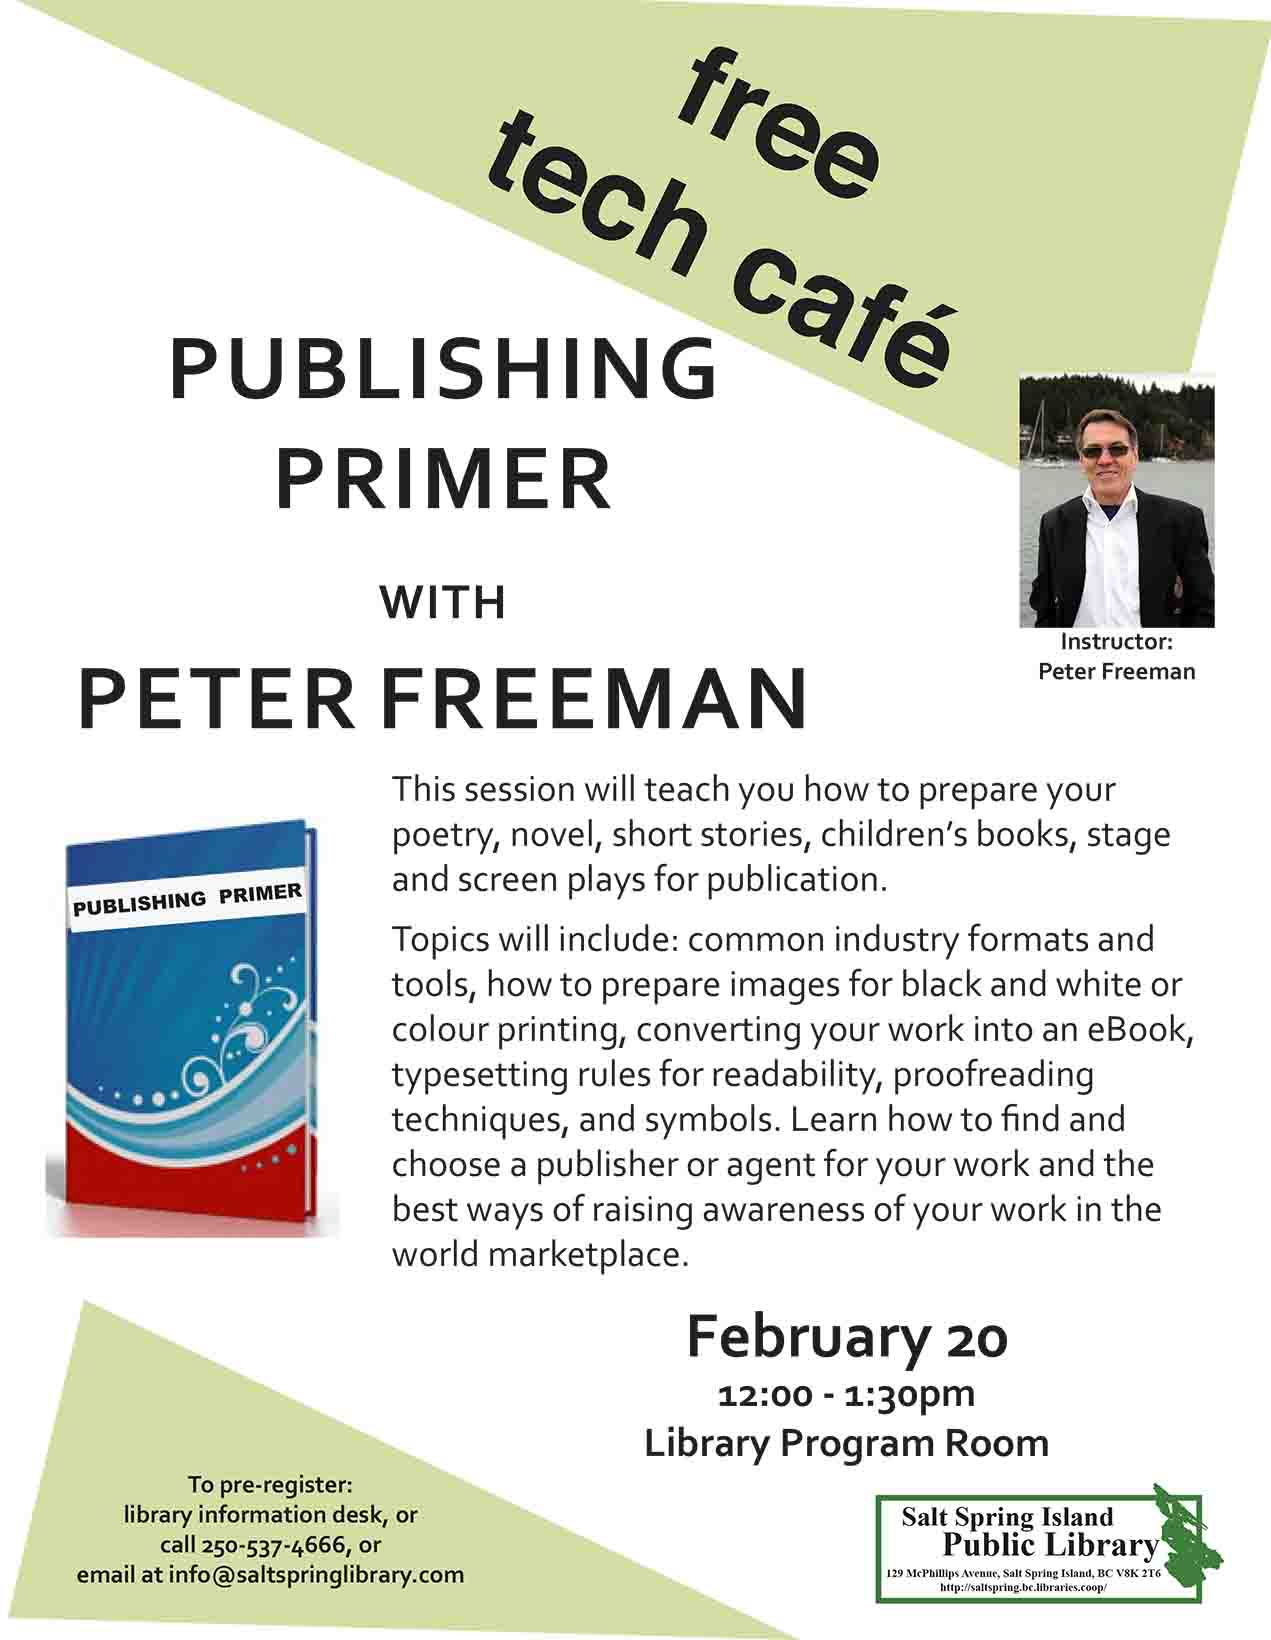 Tech Cafe: Publishing Primer @ Library Program Room